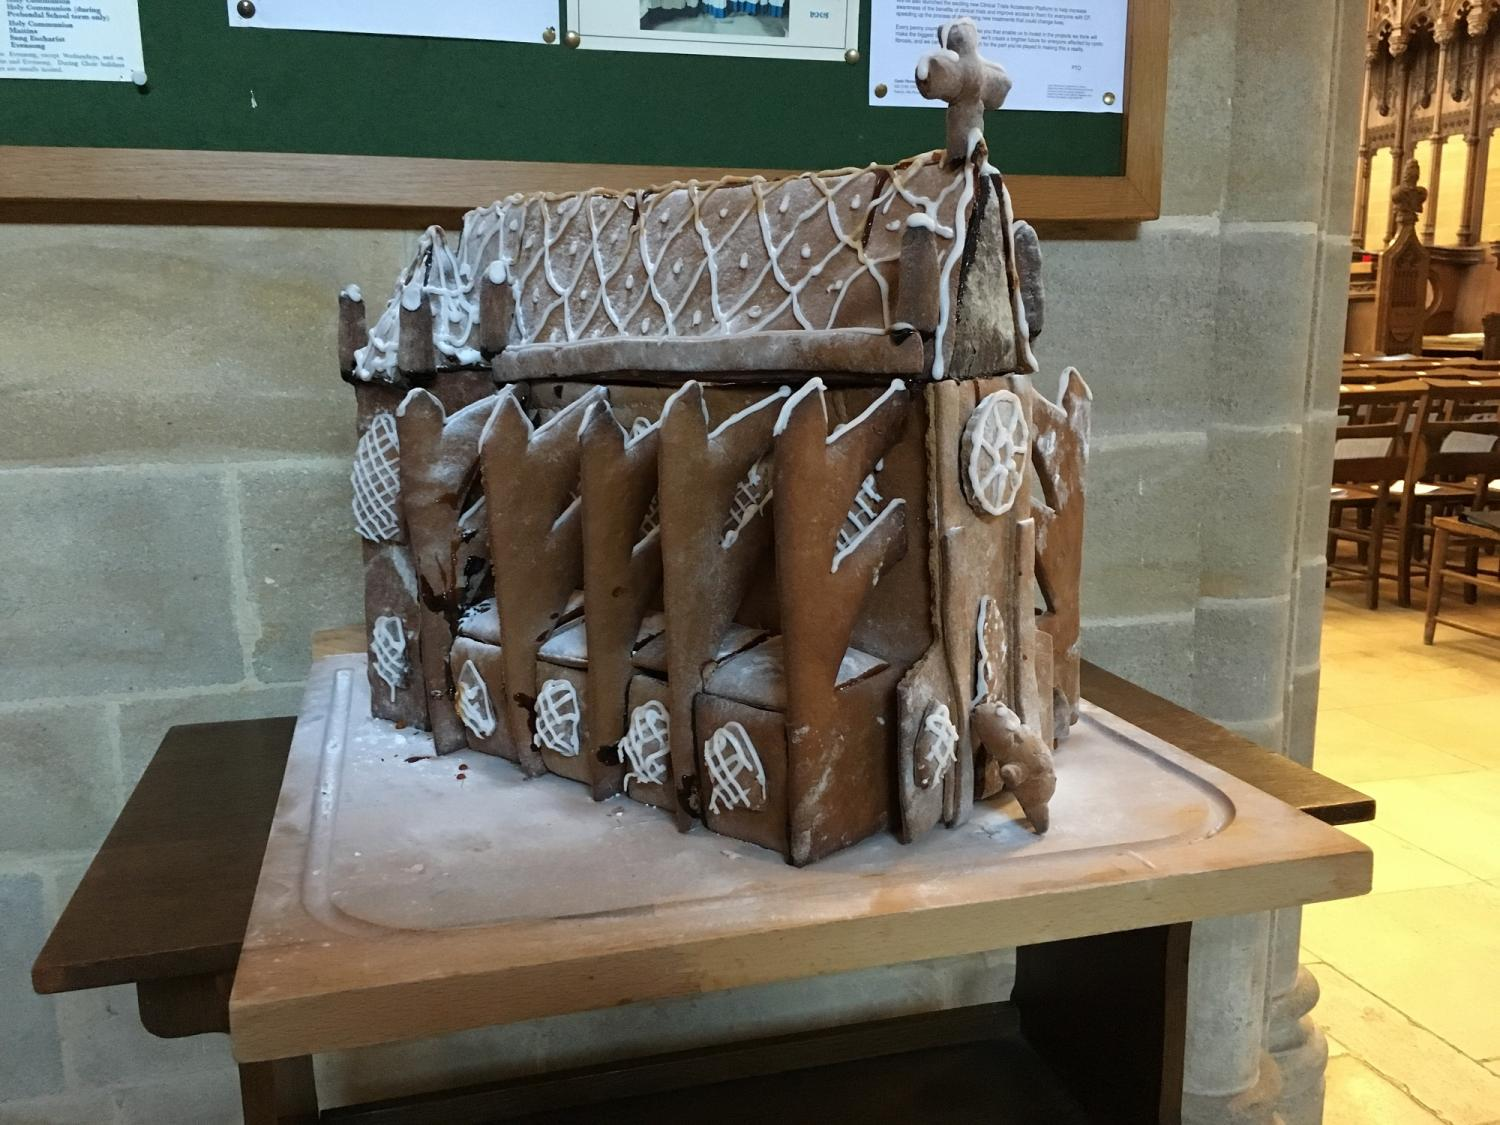 Chapel gingerbread